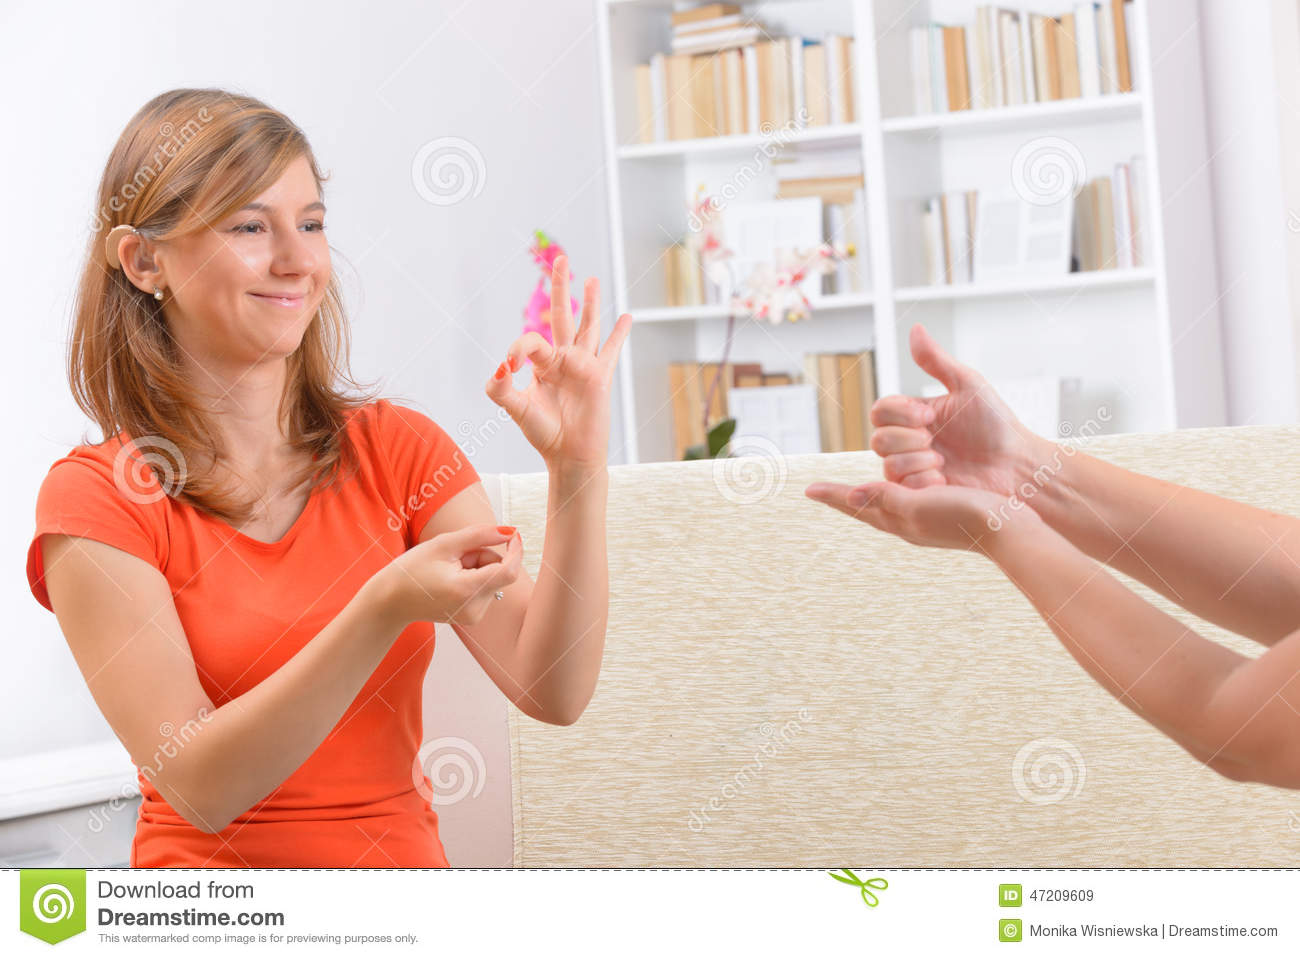 Deaf woman learning sign language